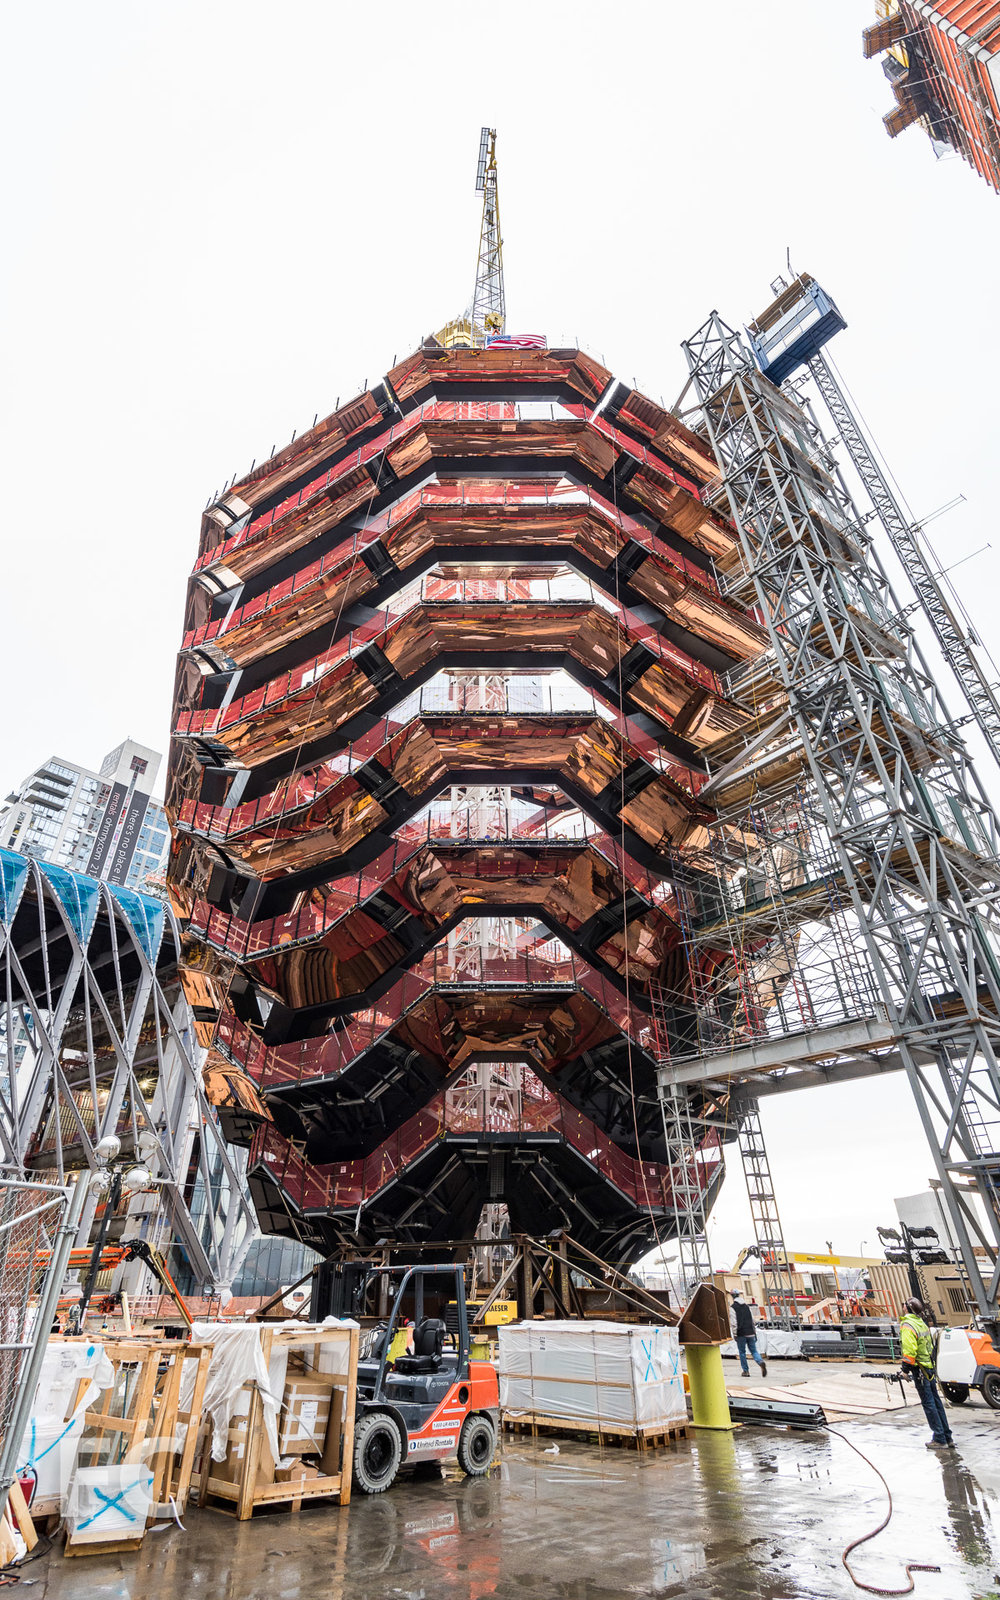 2017_12_06-Hudson Yards Vessel-DSC_5484.jpg